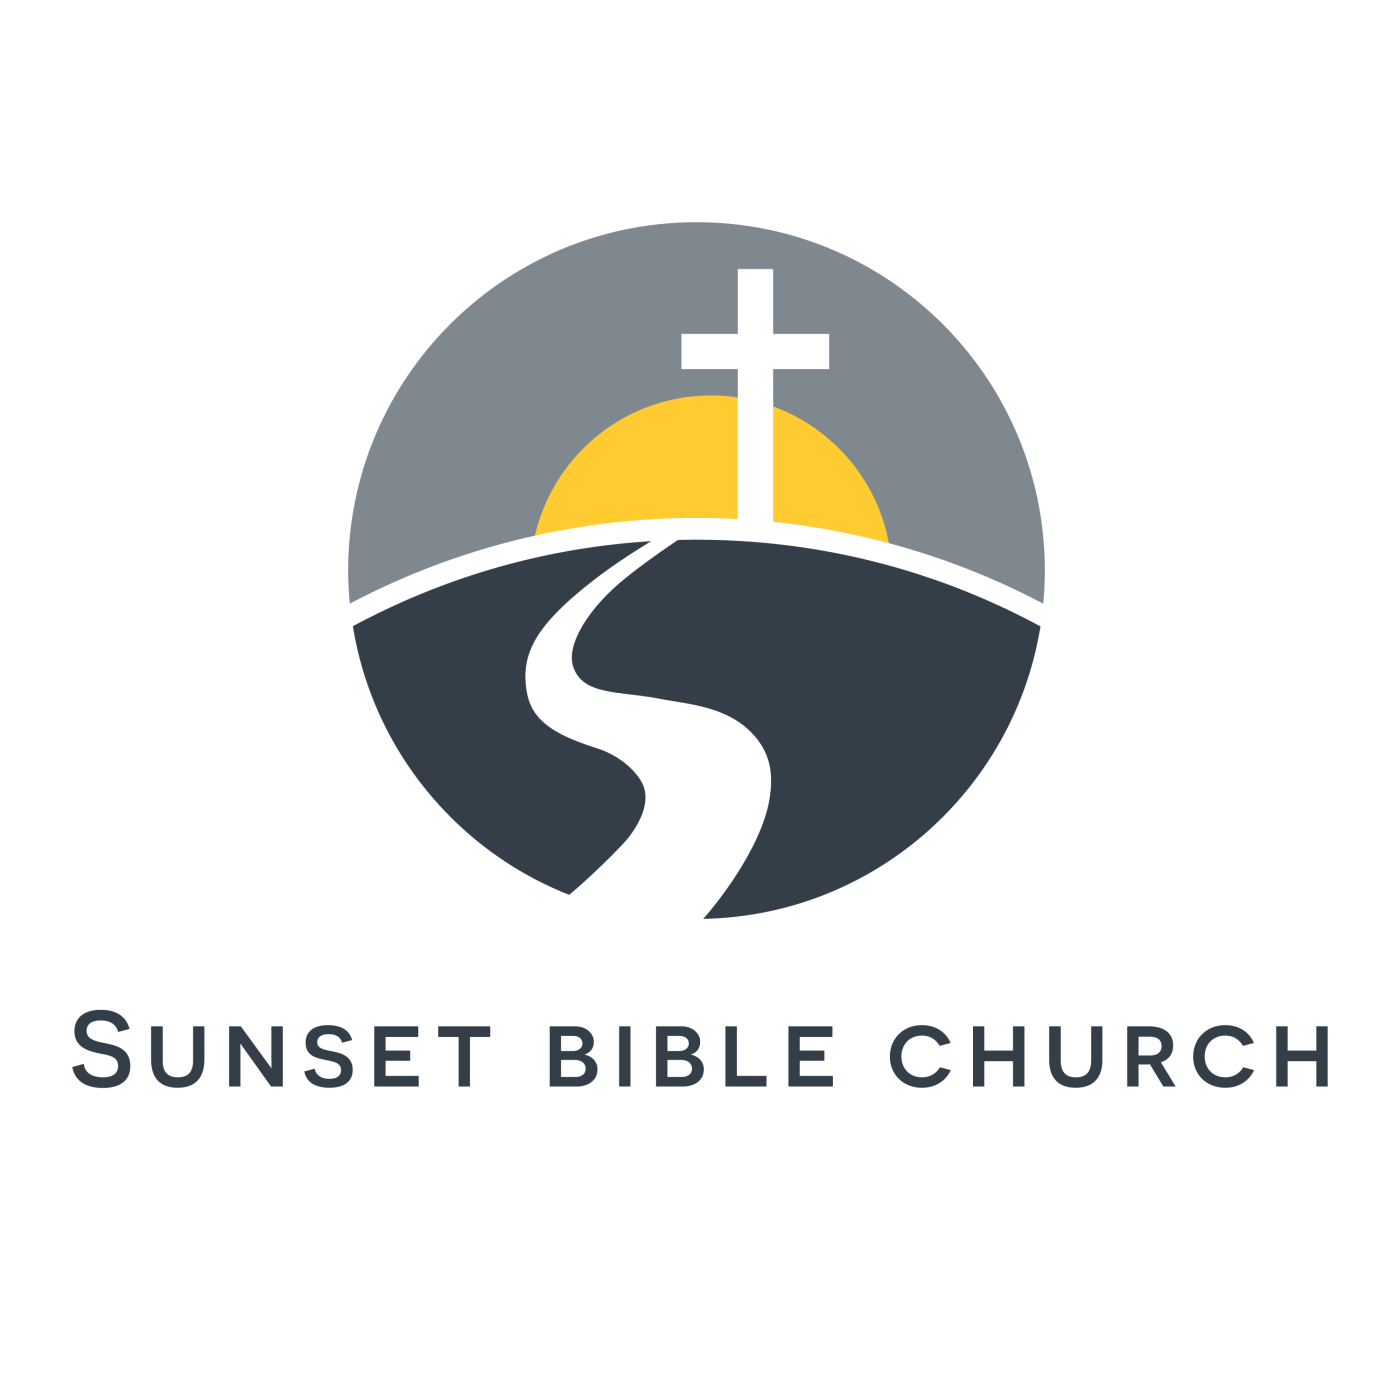 Sunset Bible Church